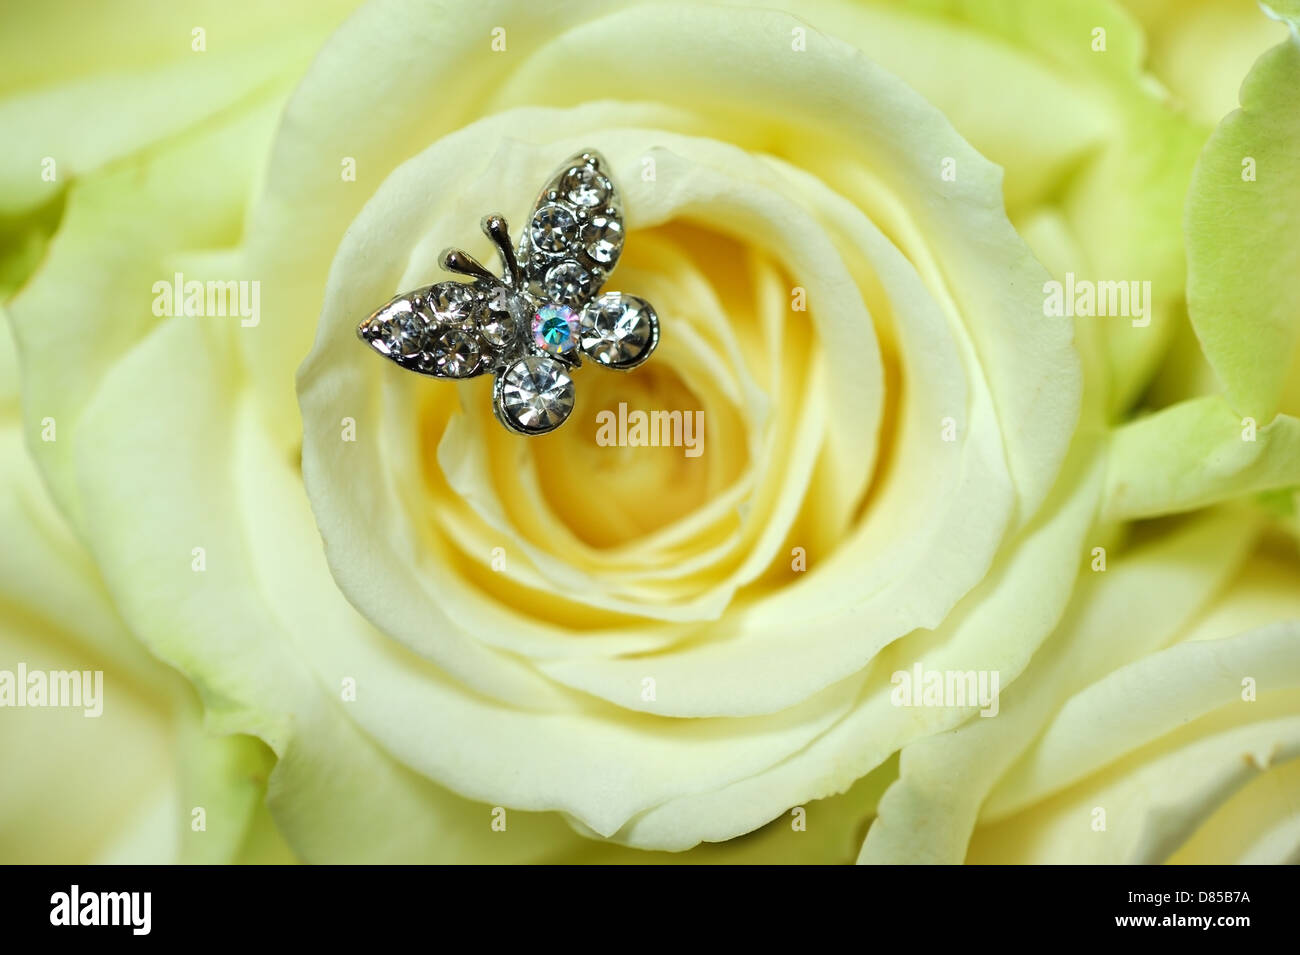 Closeup of rose with butterfly jewel - Stock Image